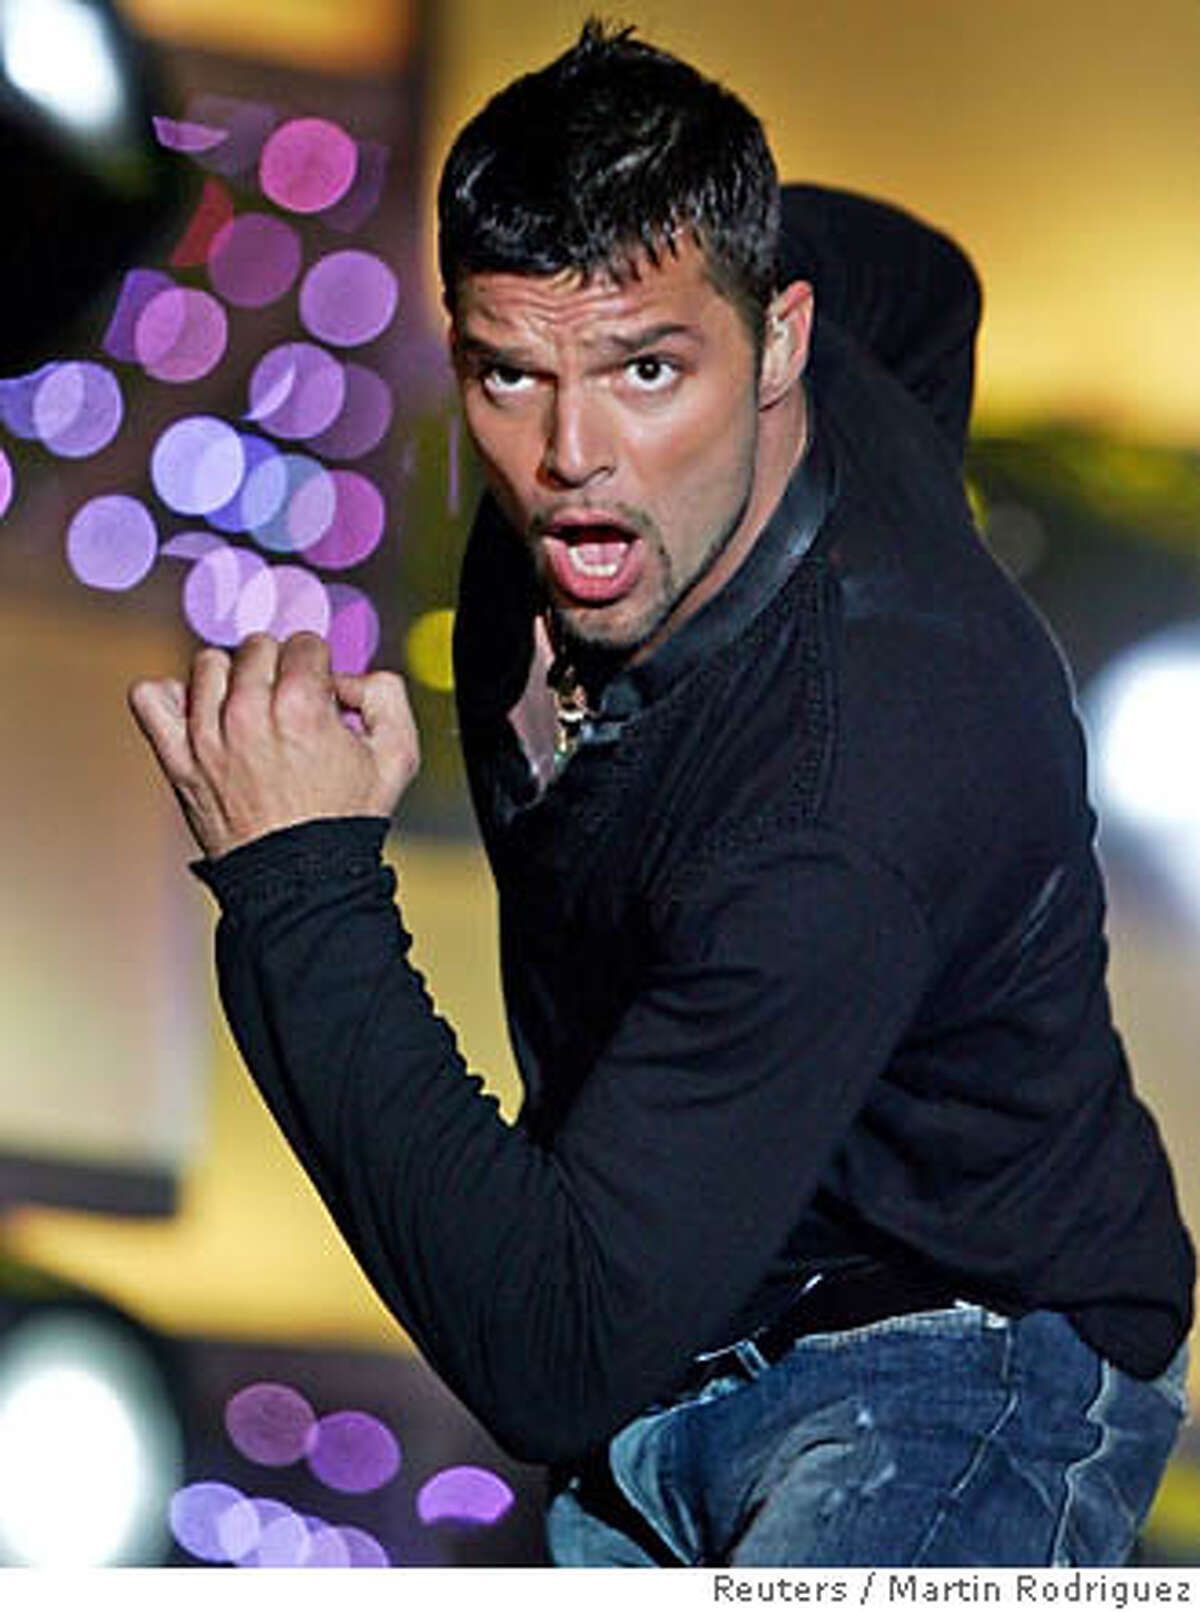 Singer Ricky Martin performs in Punta del Este City December 8, 2005. Martin is on his Latin American tour titled Una Noche con Ricky Martin (One Night with Ricky Martin). Photo taken on December 8, 2005. REUTERS/Martin Rodriguez Ran on: 12-30-2005 Isobel Campbell plays Cafe Du Nord on March 8. Tickets go on sale Sunday. 0